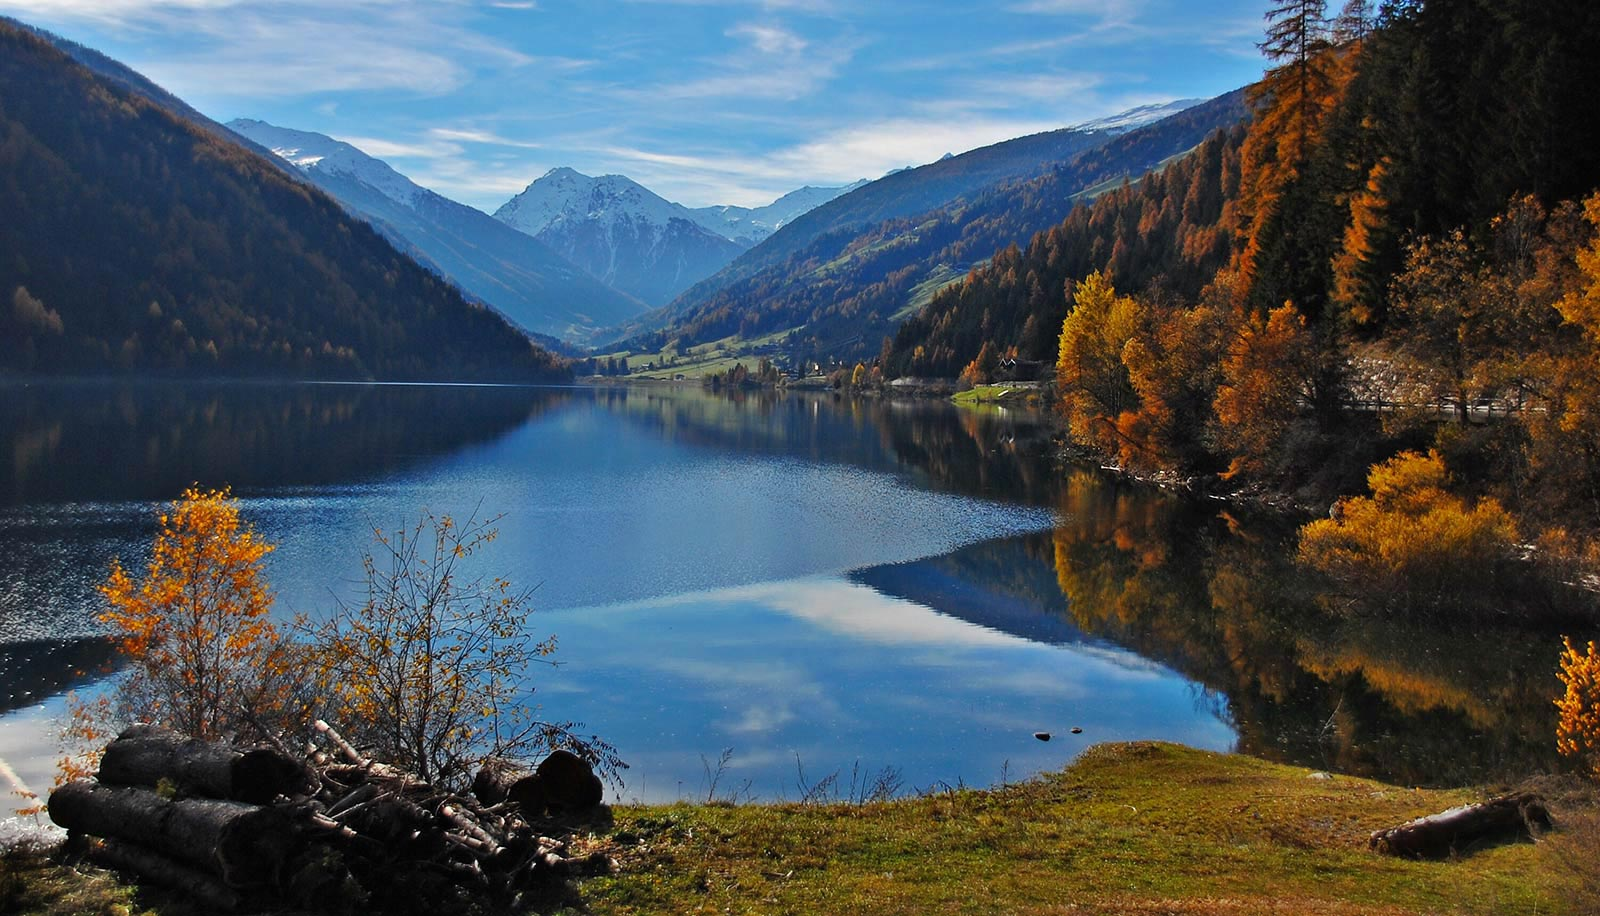 Zoggler Stausee-Lago di Zoccolo in Ultental-Val d'Ultimo on an autumn day with snowy mountains in the background